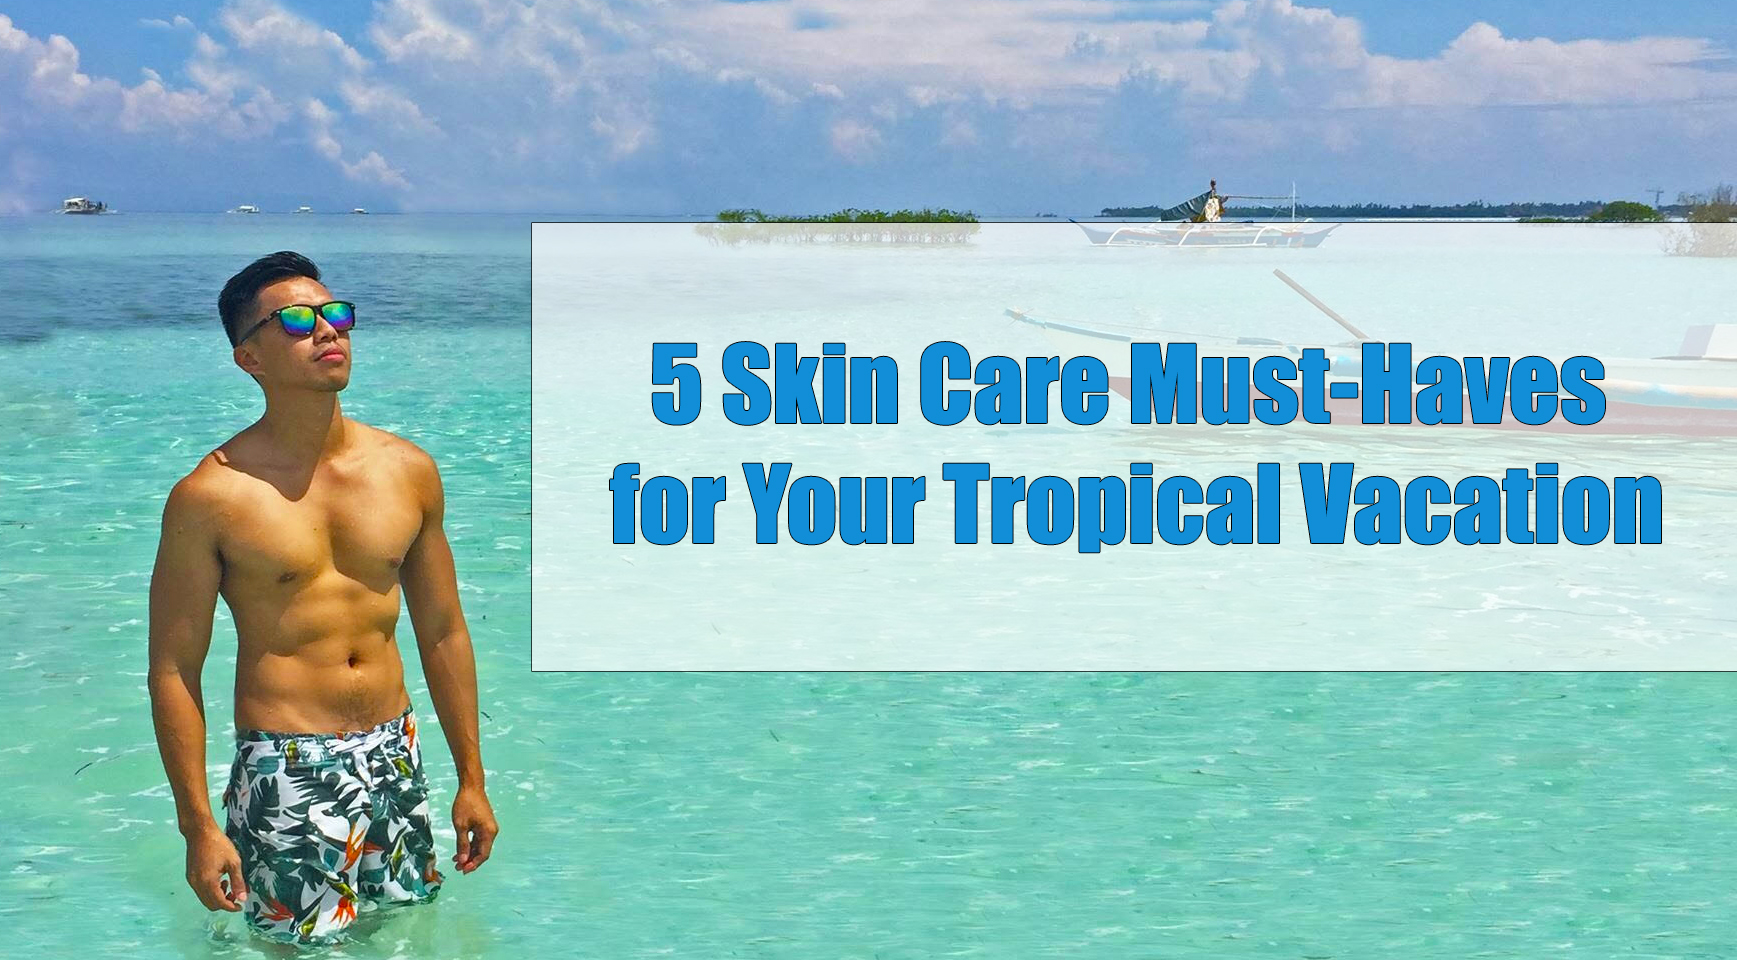 5 Skin Care Must-Haves for Your Tropical Vacation